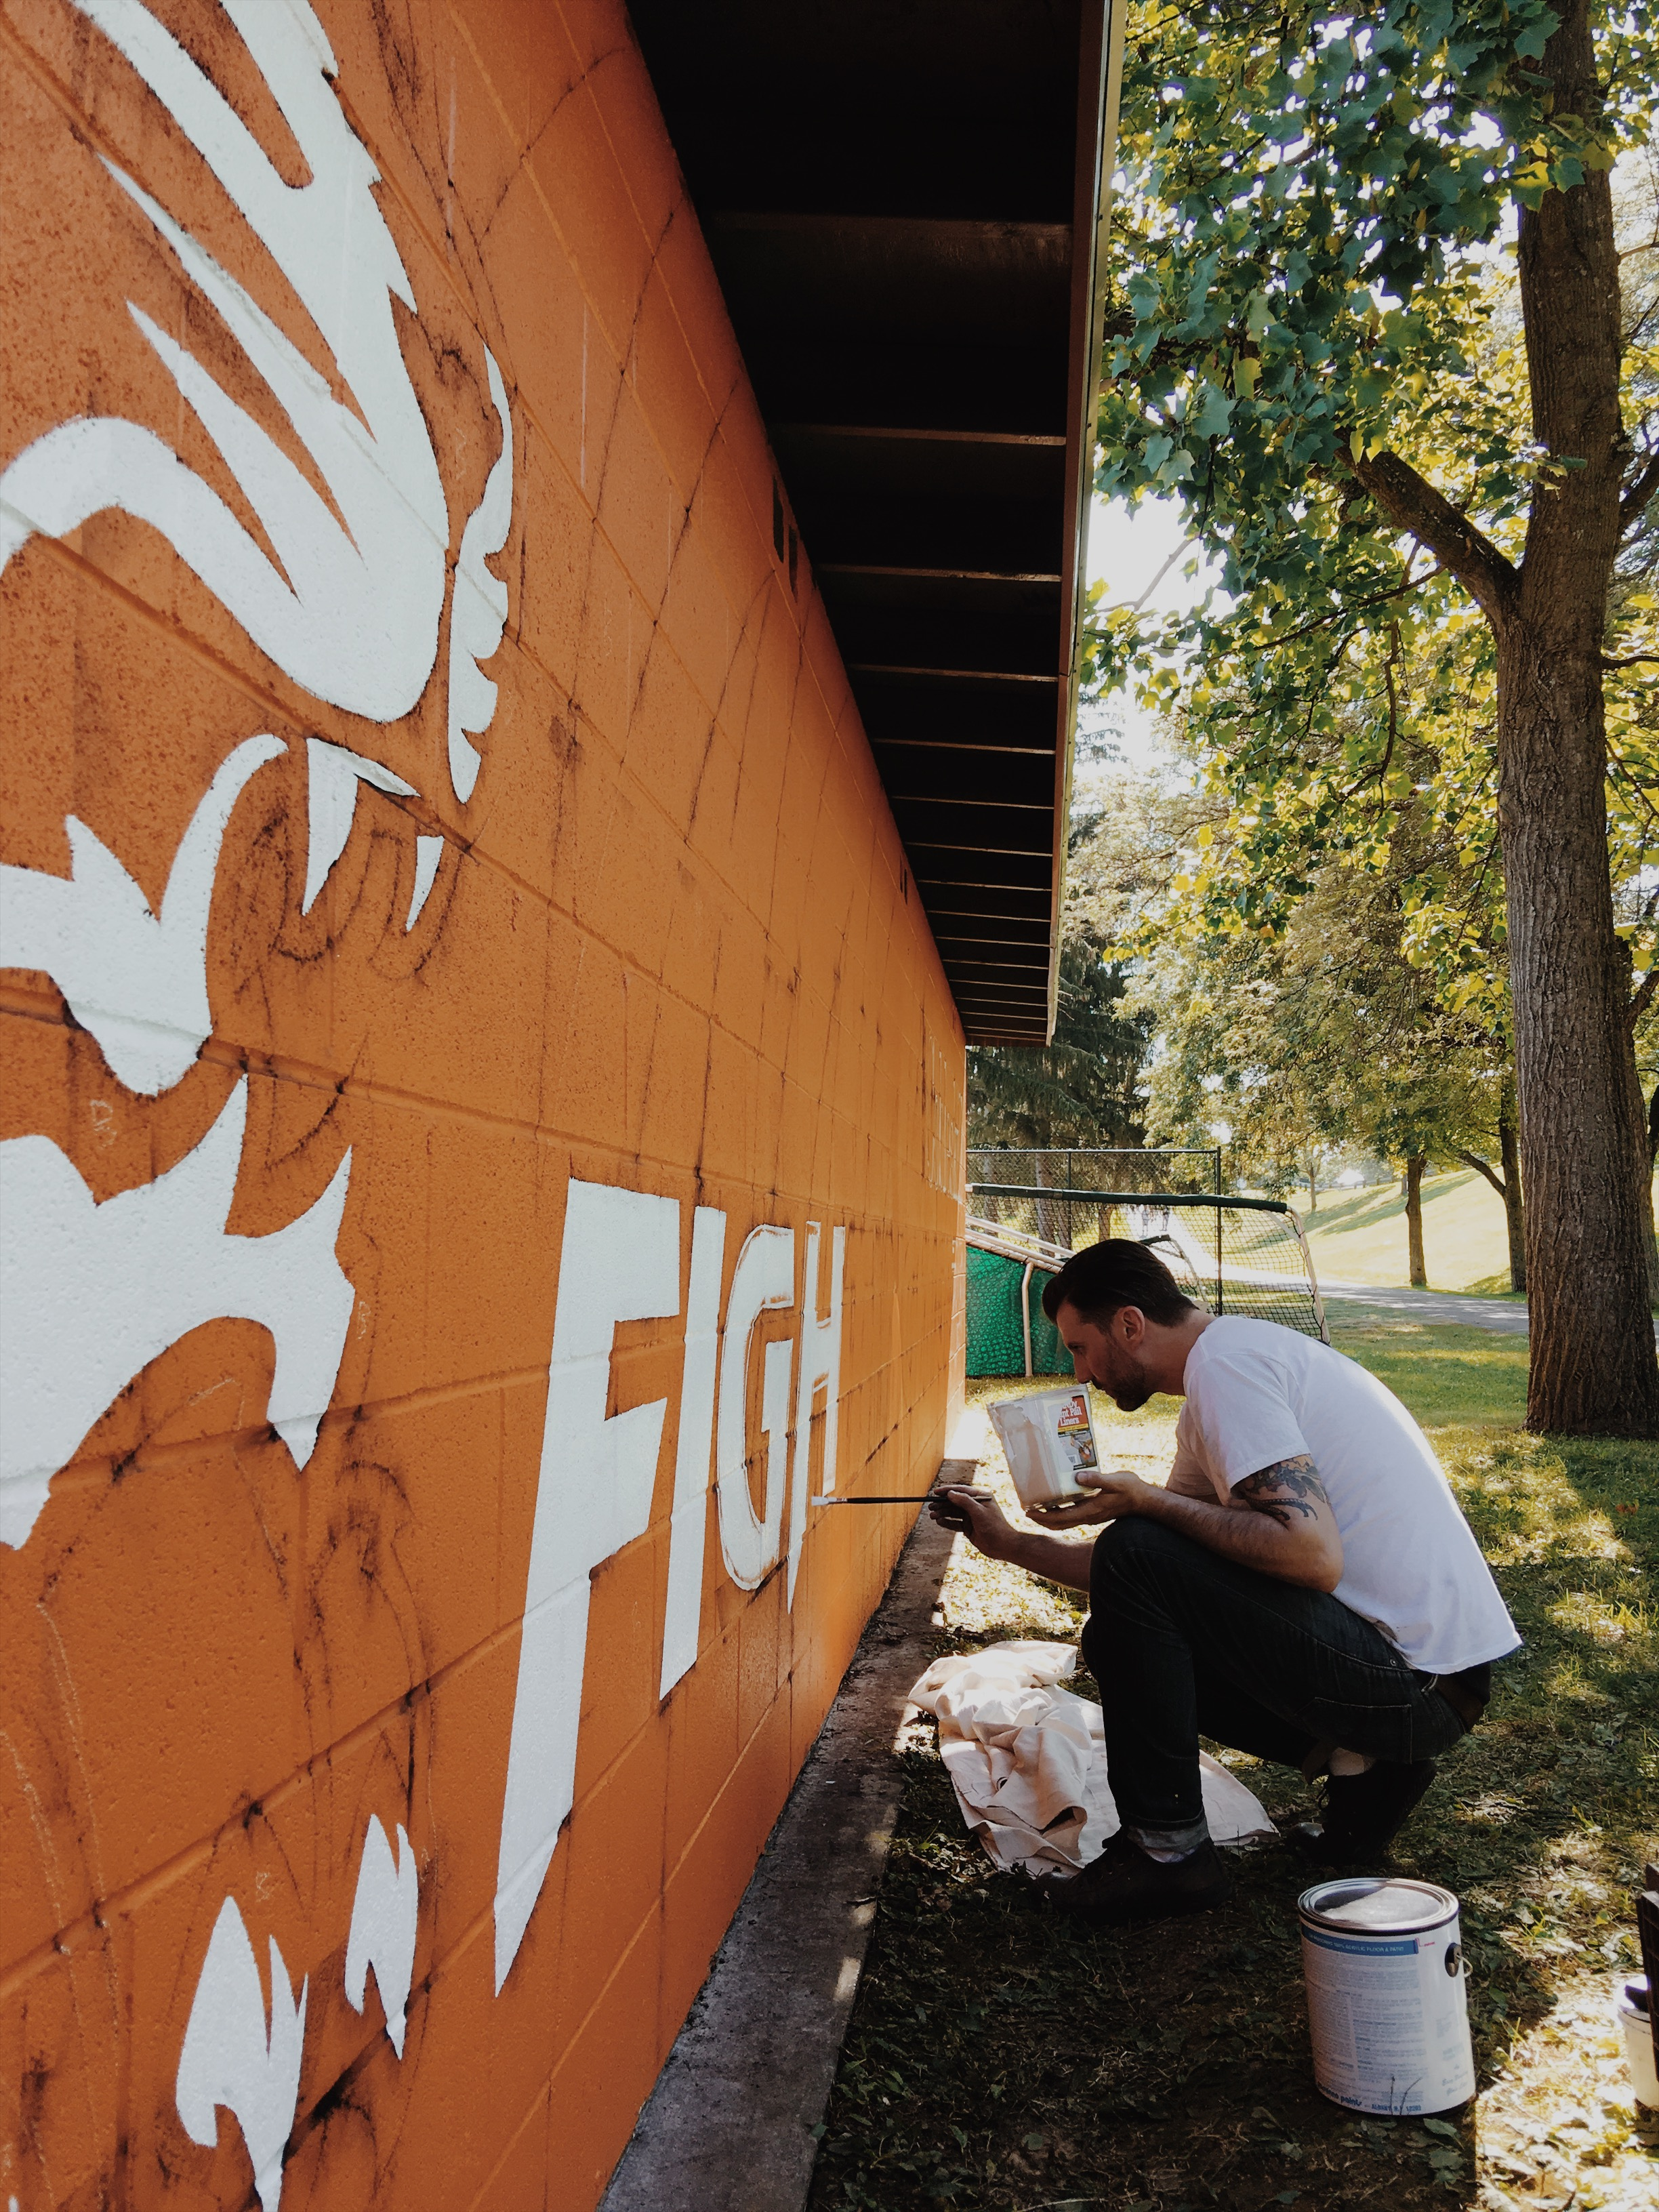 painting the SUNY dugout